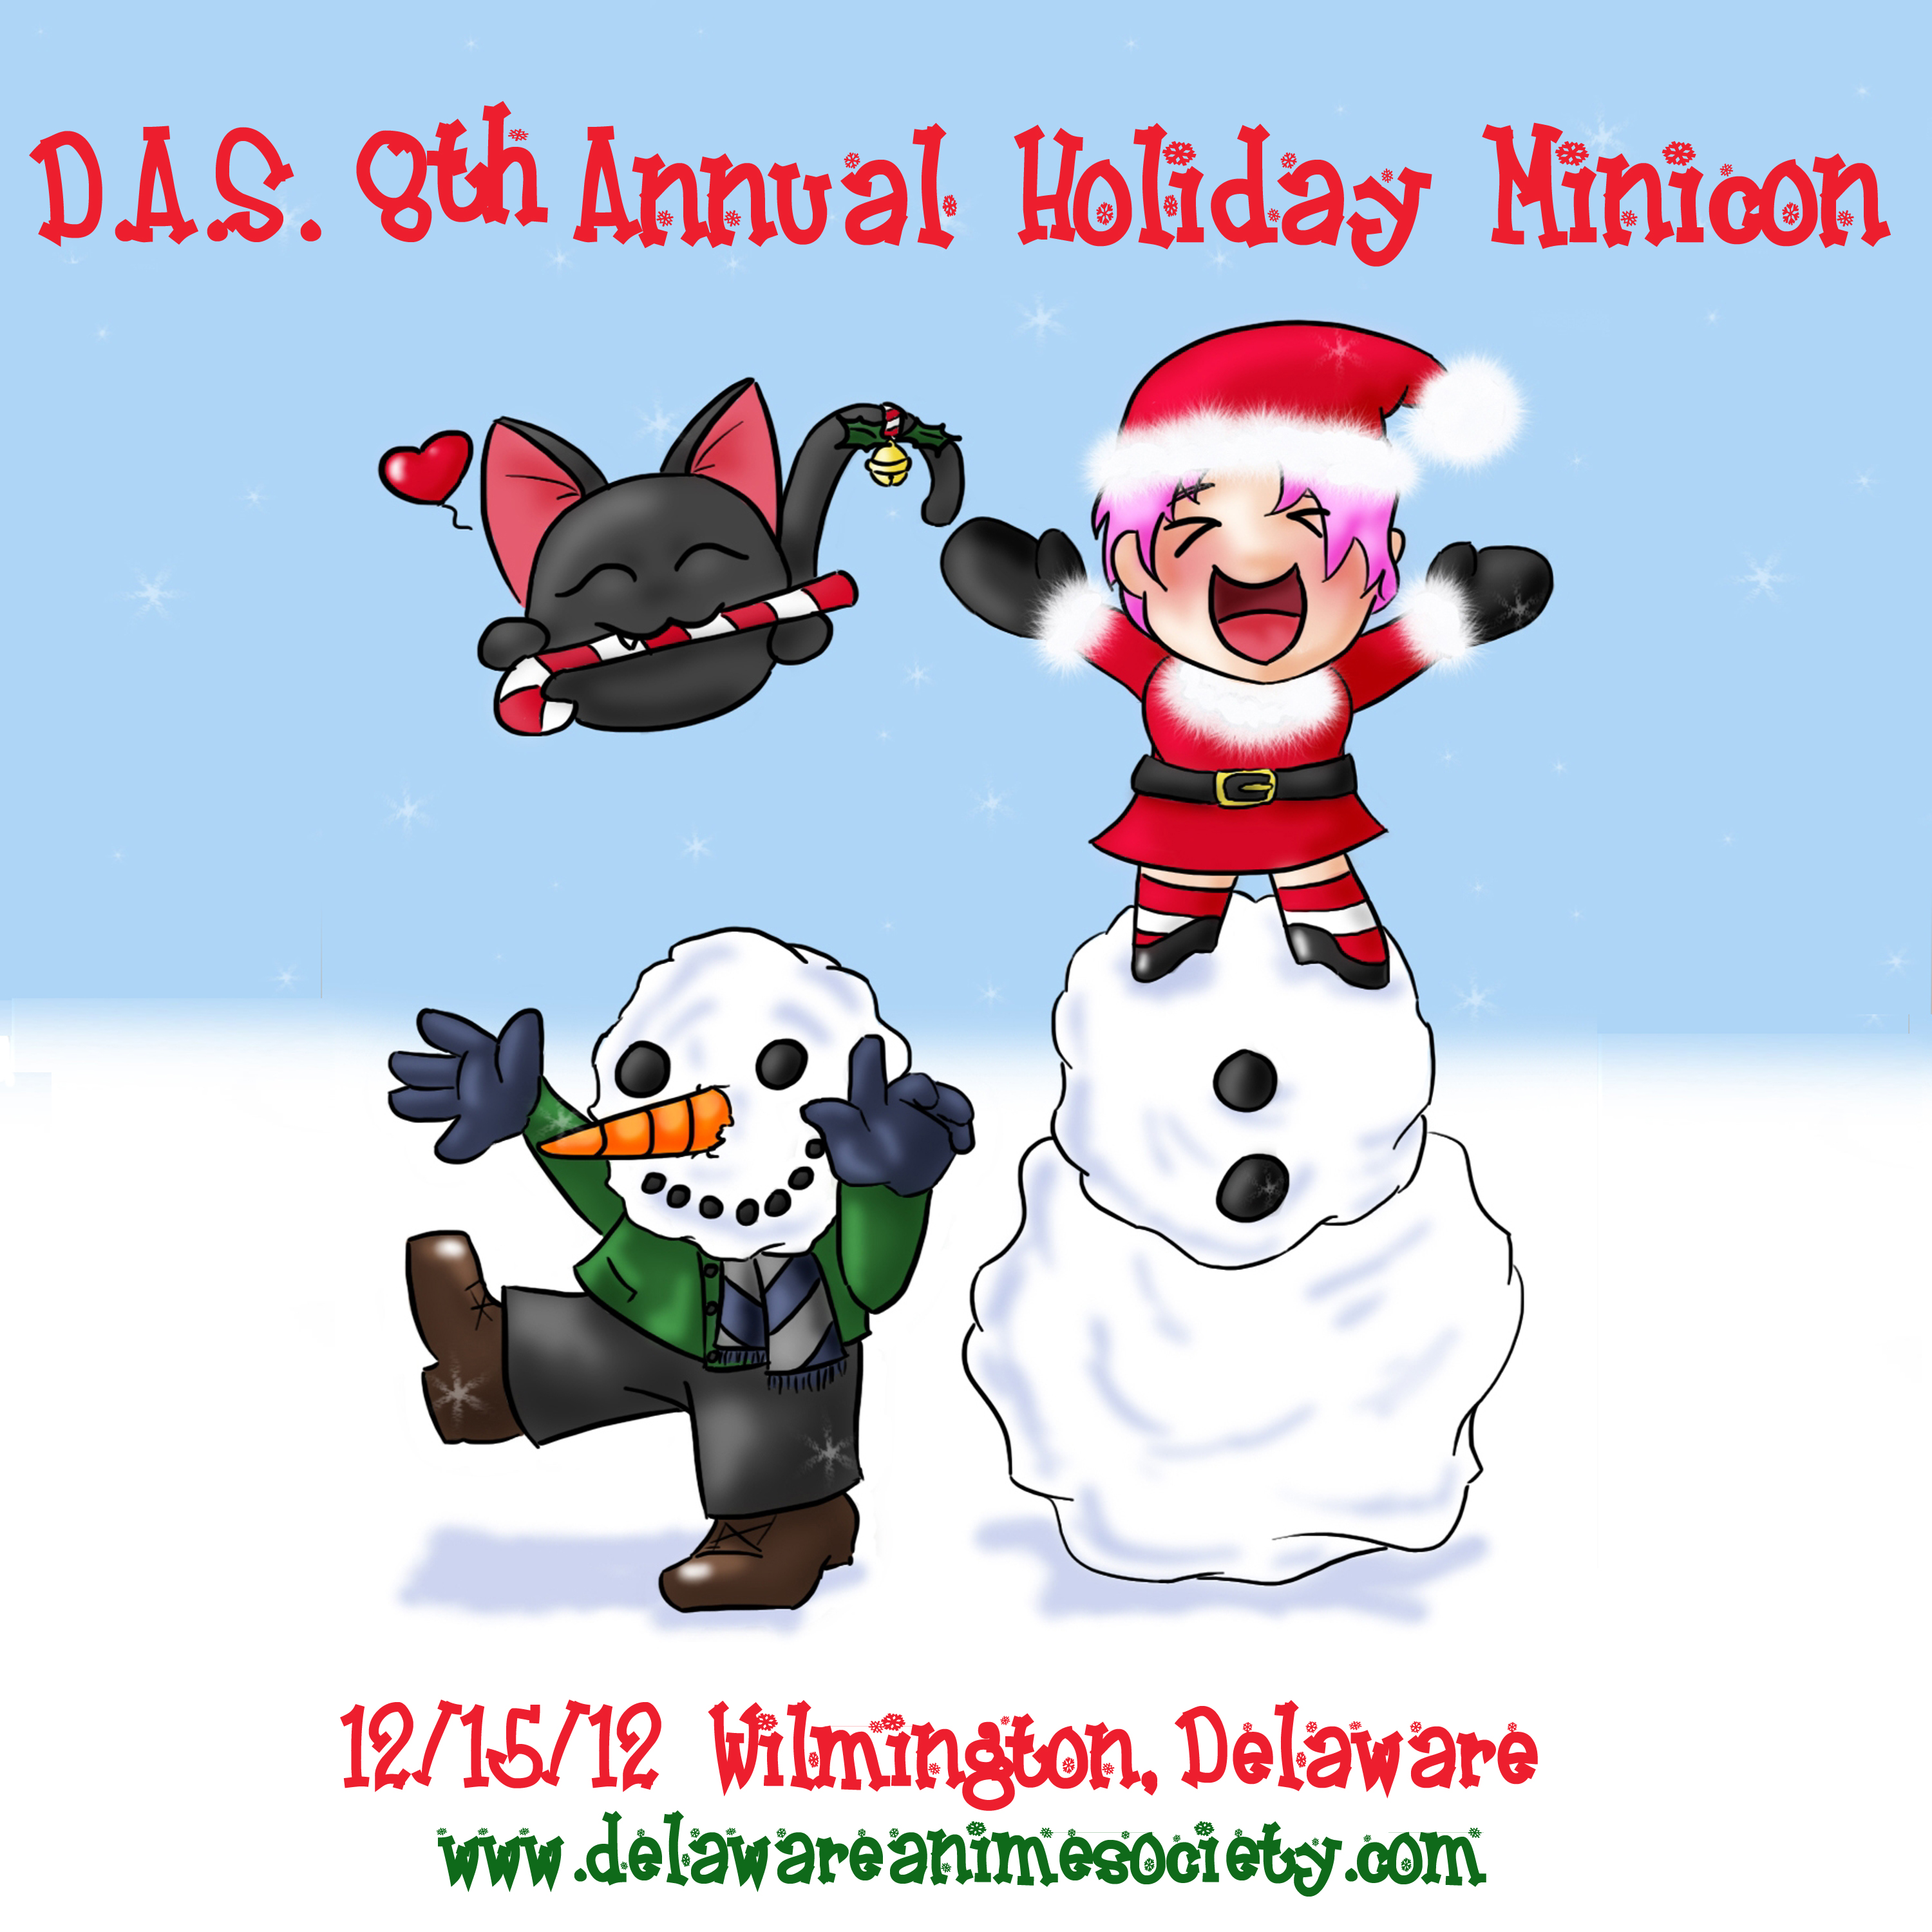 DAS Holiday Minicon